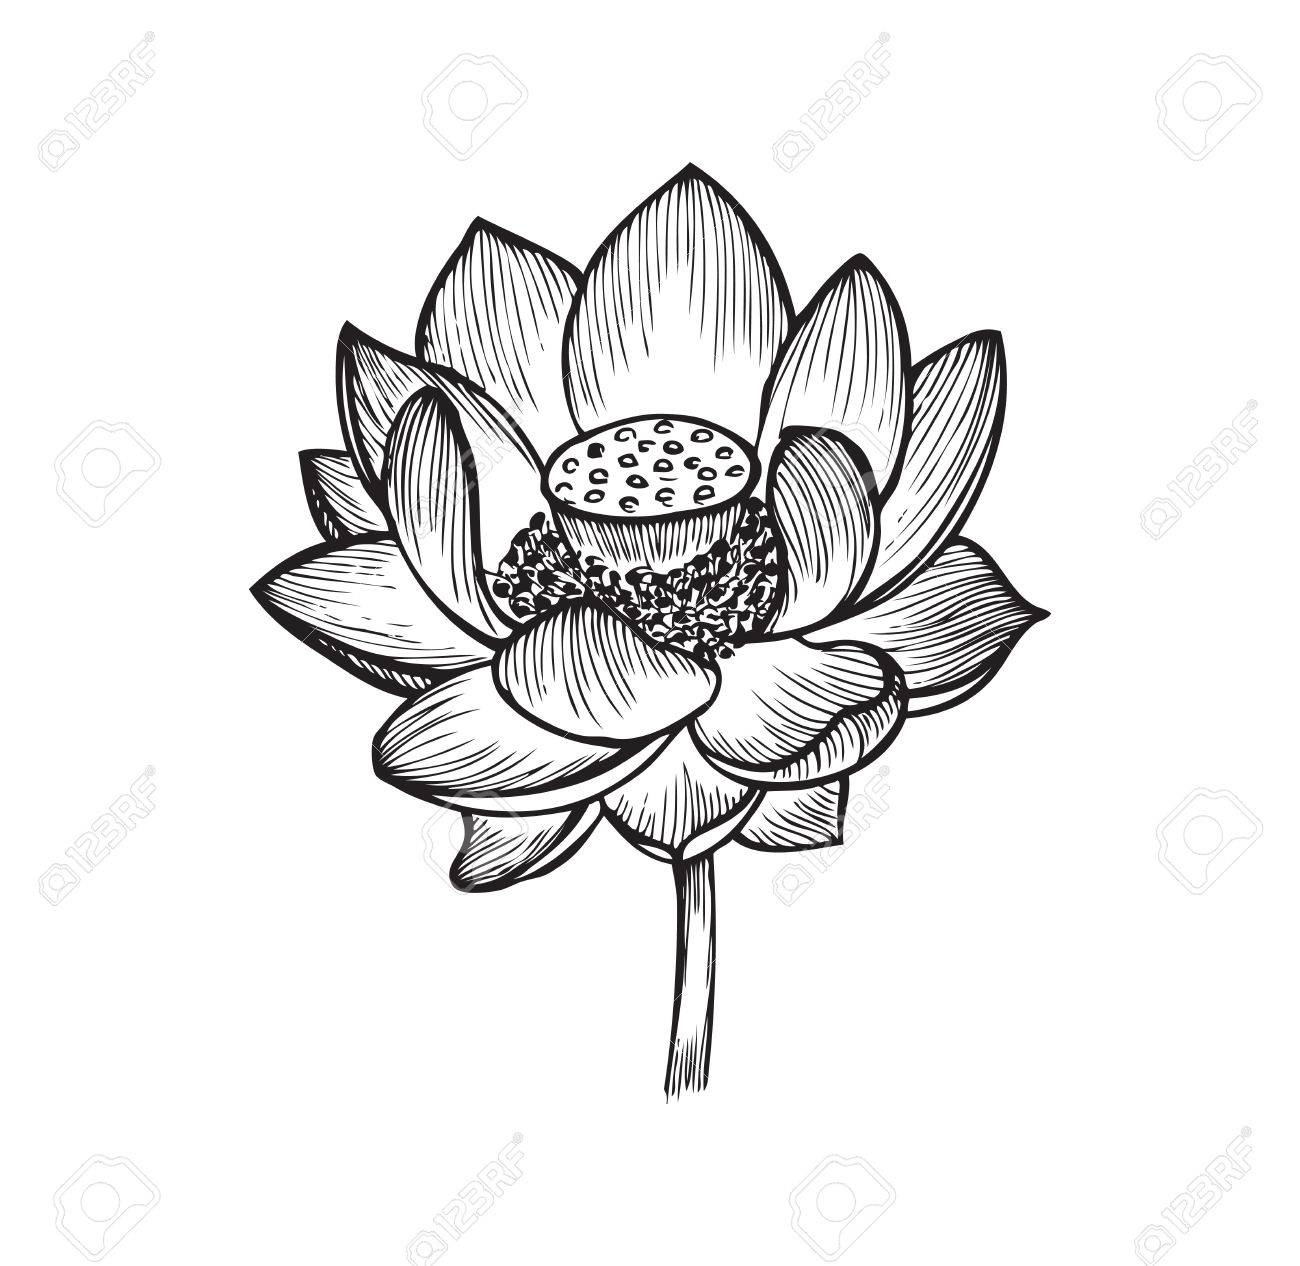 The Lotus Flower Black And White Vector Illustration Royalty Free